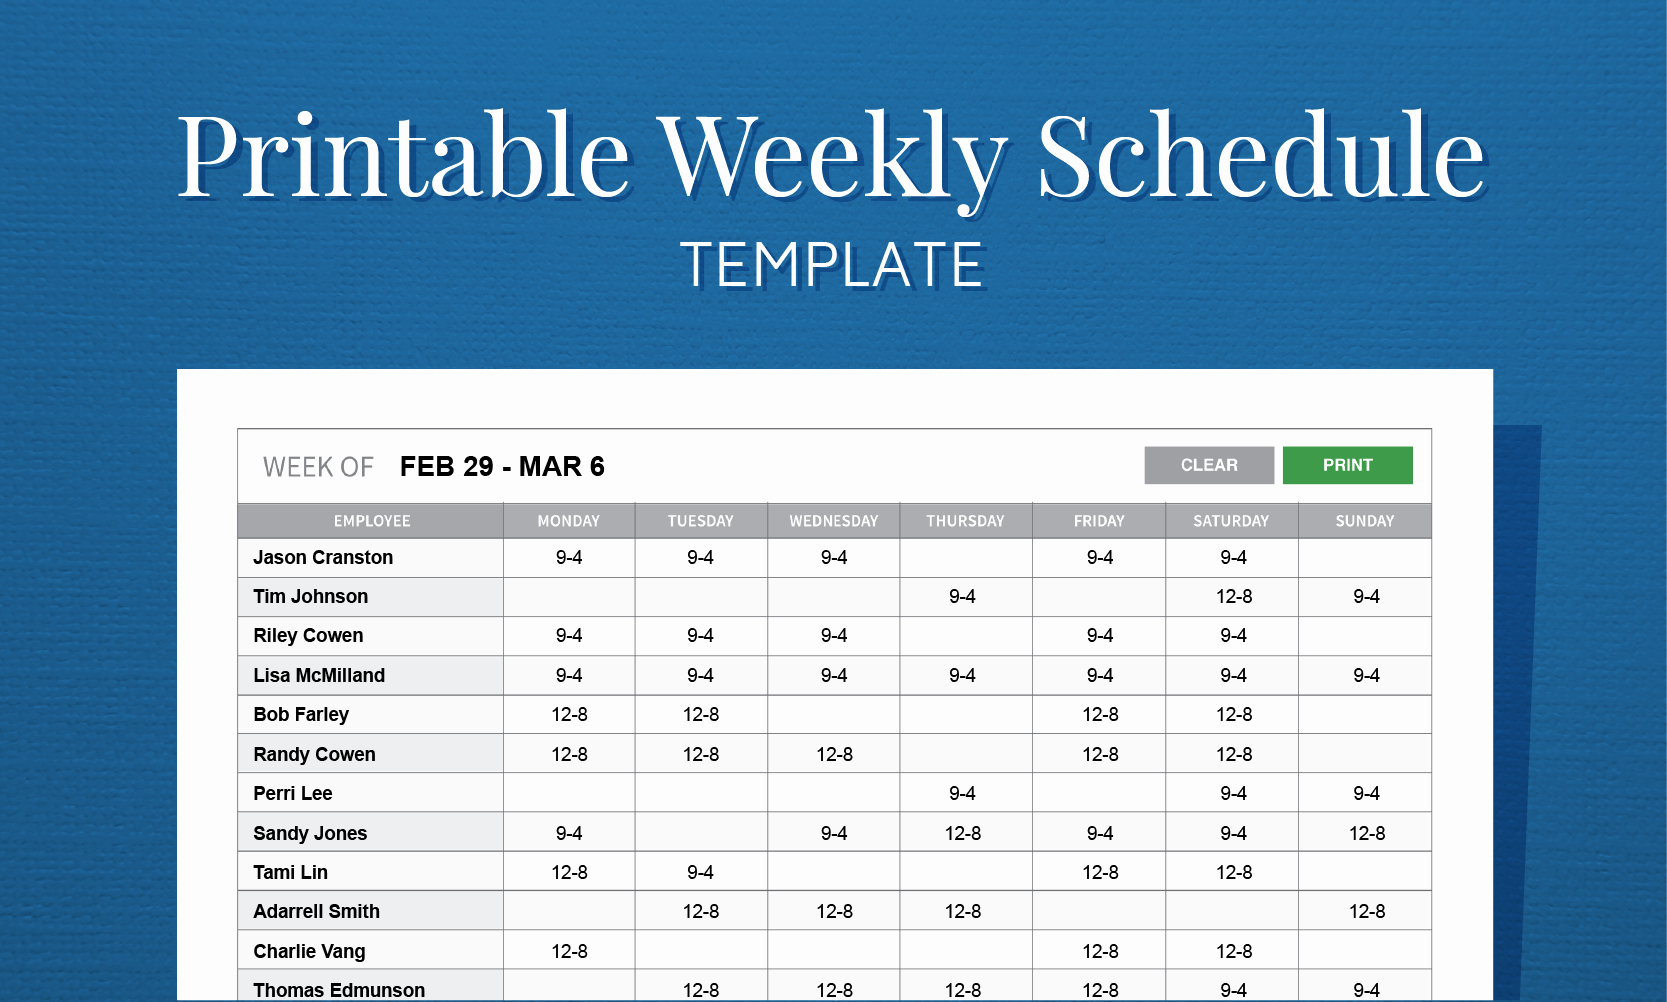 Working Hours Schedule Template Best Of Free Printable Weekly Work Schedule Template for Employee Scheduling when I Work